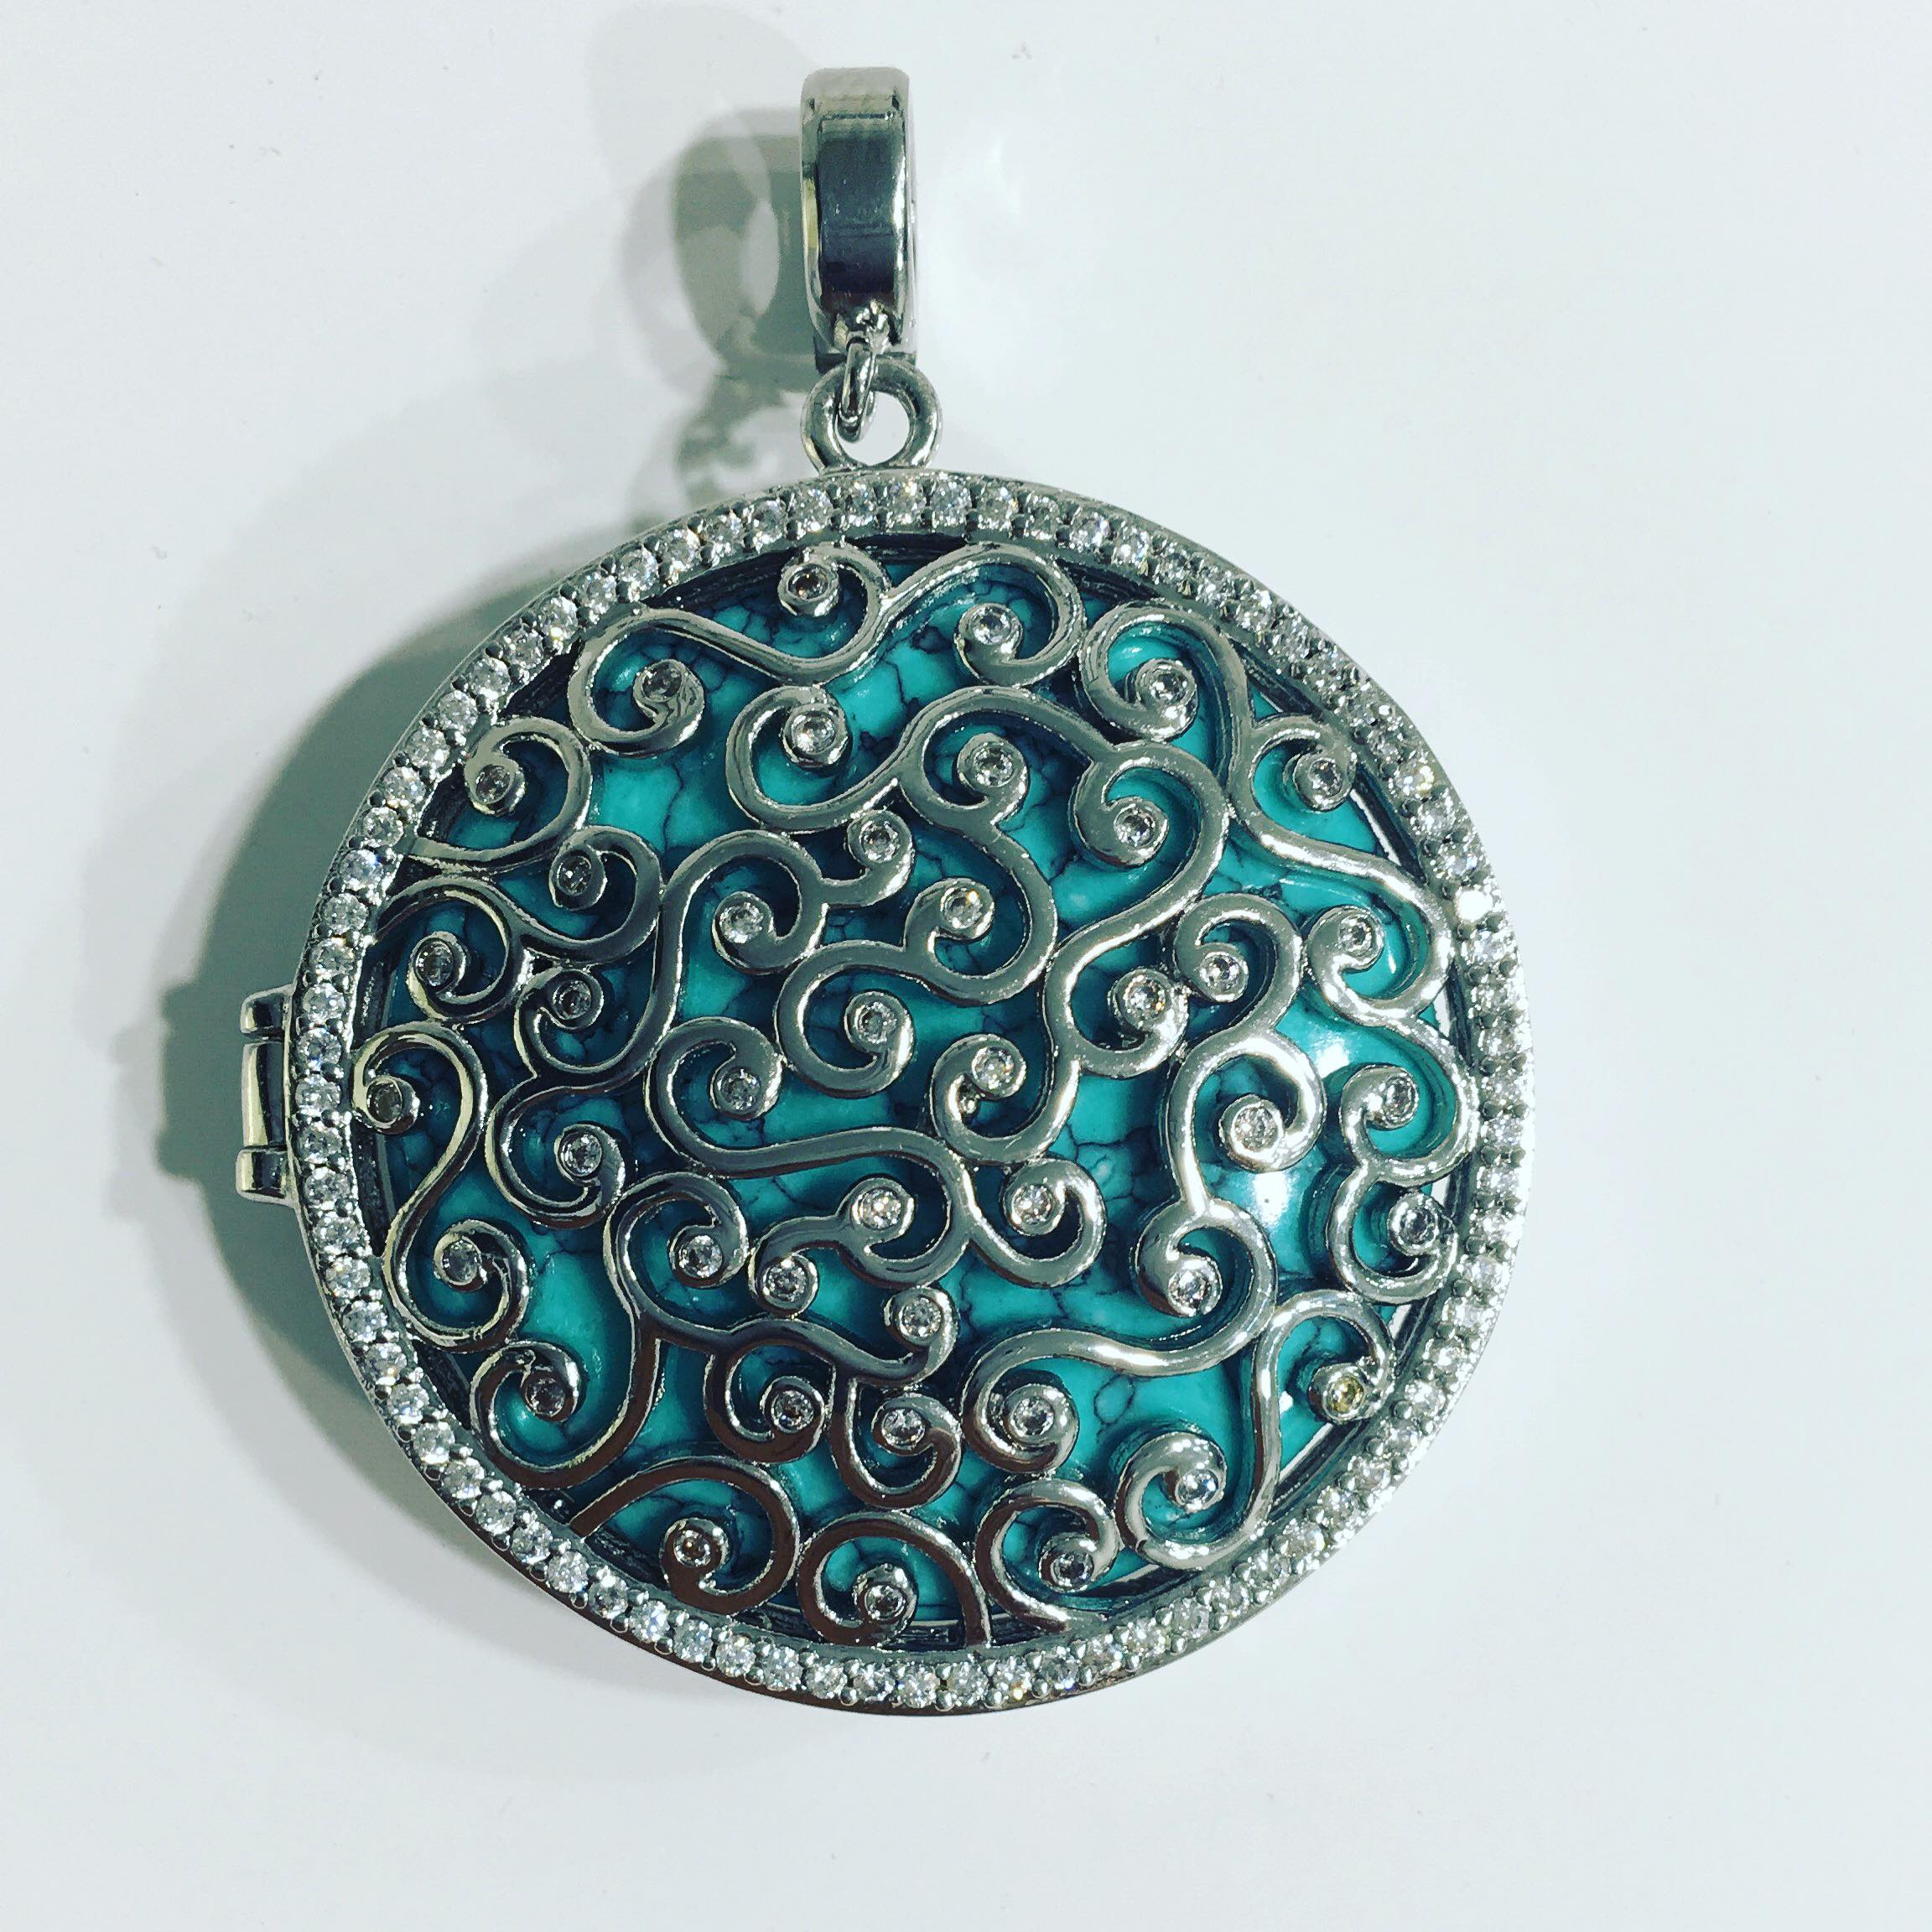 Stunning  Dream Catcher Pendant  ($238) with turquoise insert www.diamondsdirect.co.nz